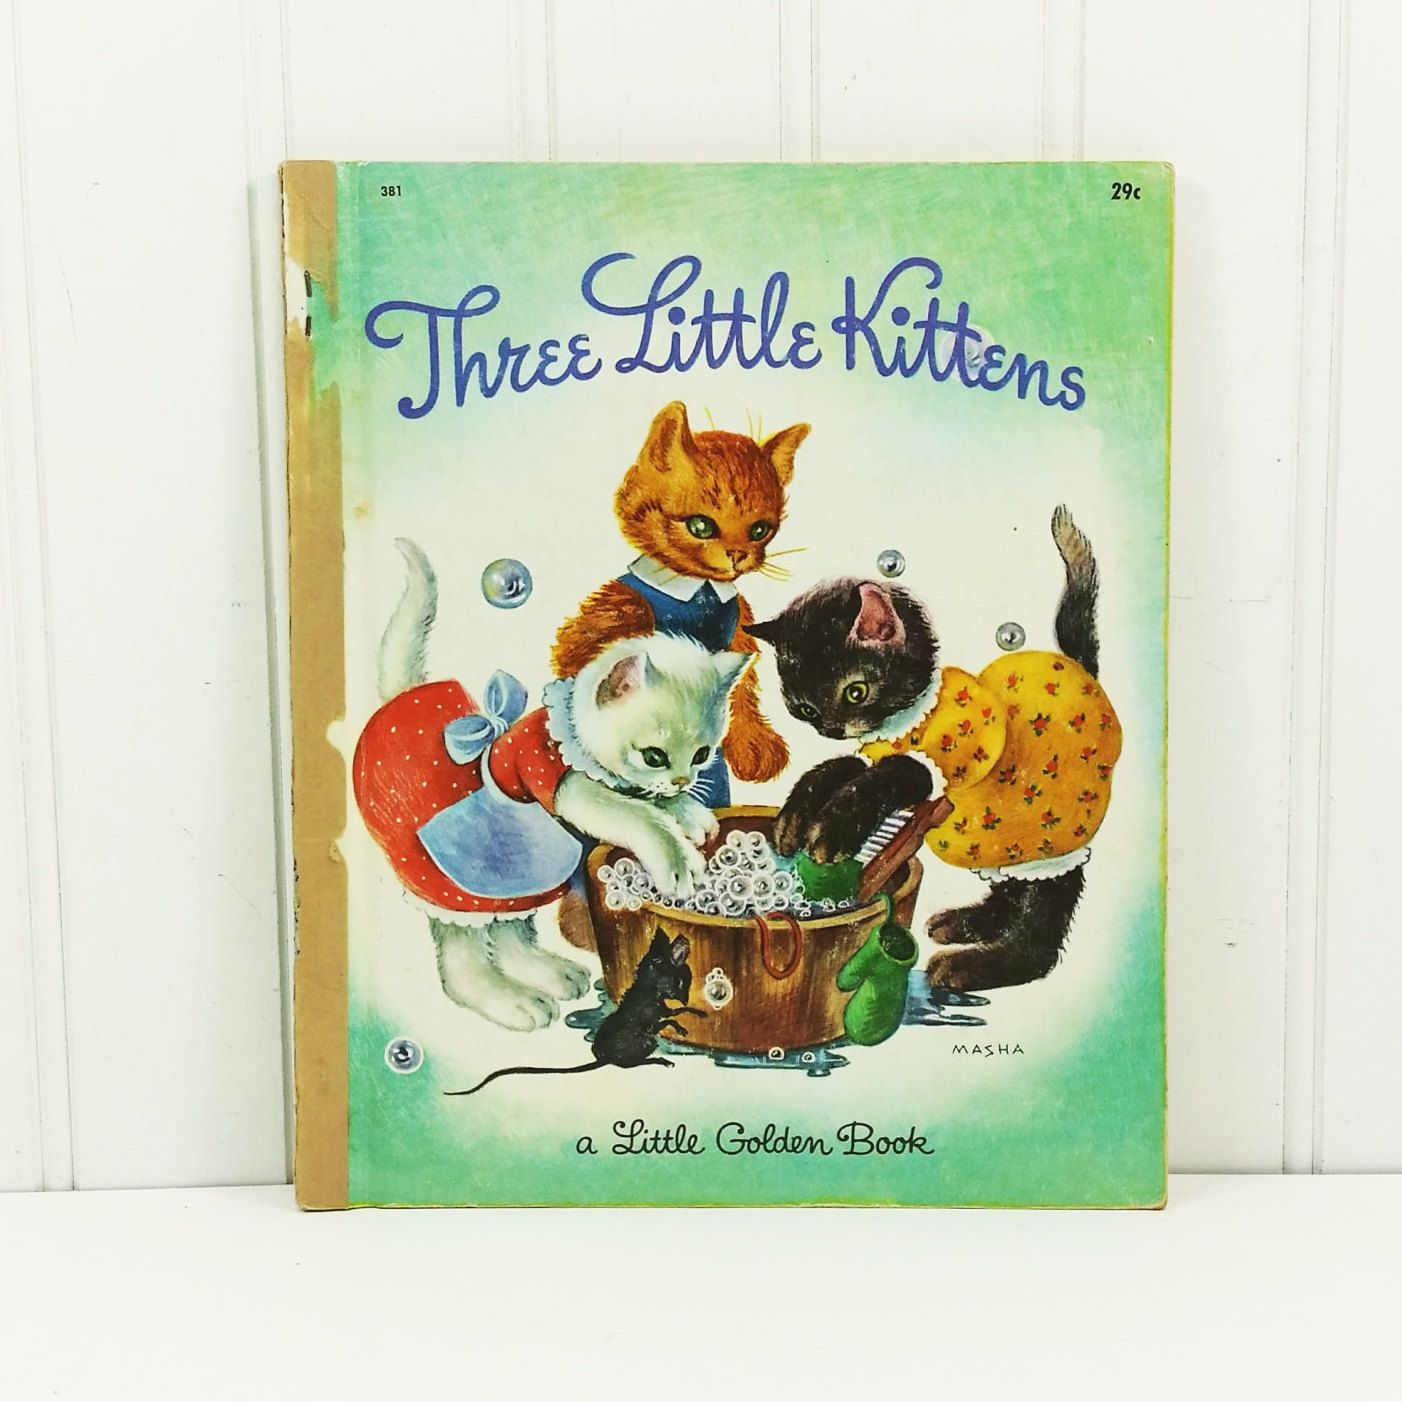 Three Little Kittens Illustrated By Masha Classic Nursery Rhyme 1950s Little Golden Library By Natu Little Golden Books Storybook Art Vintage Children S Books